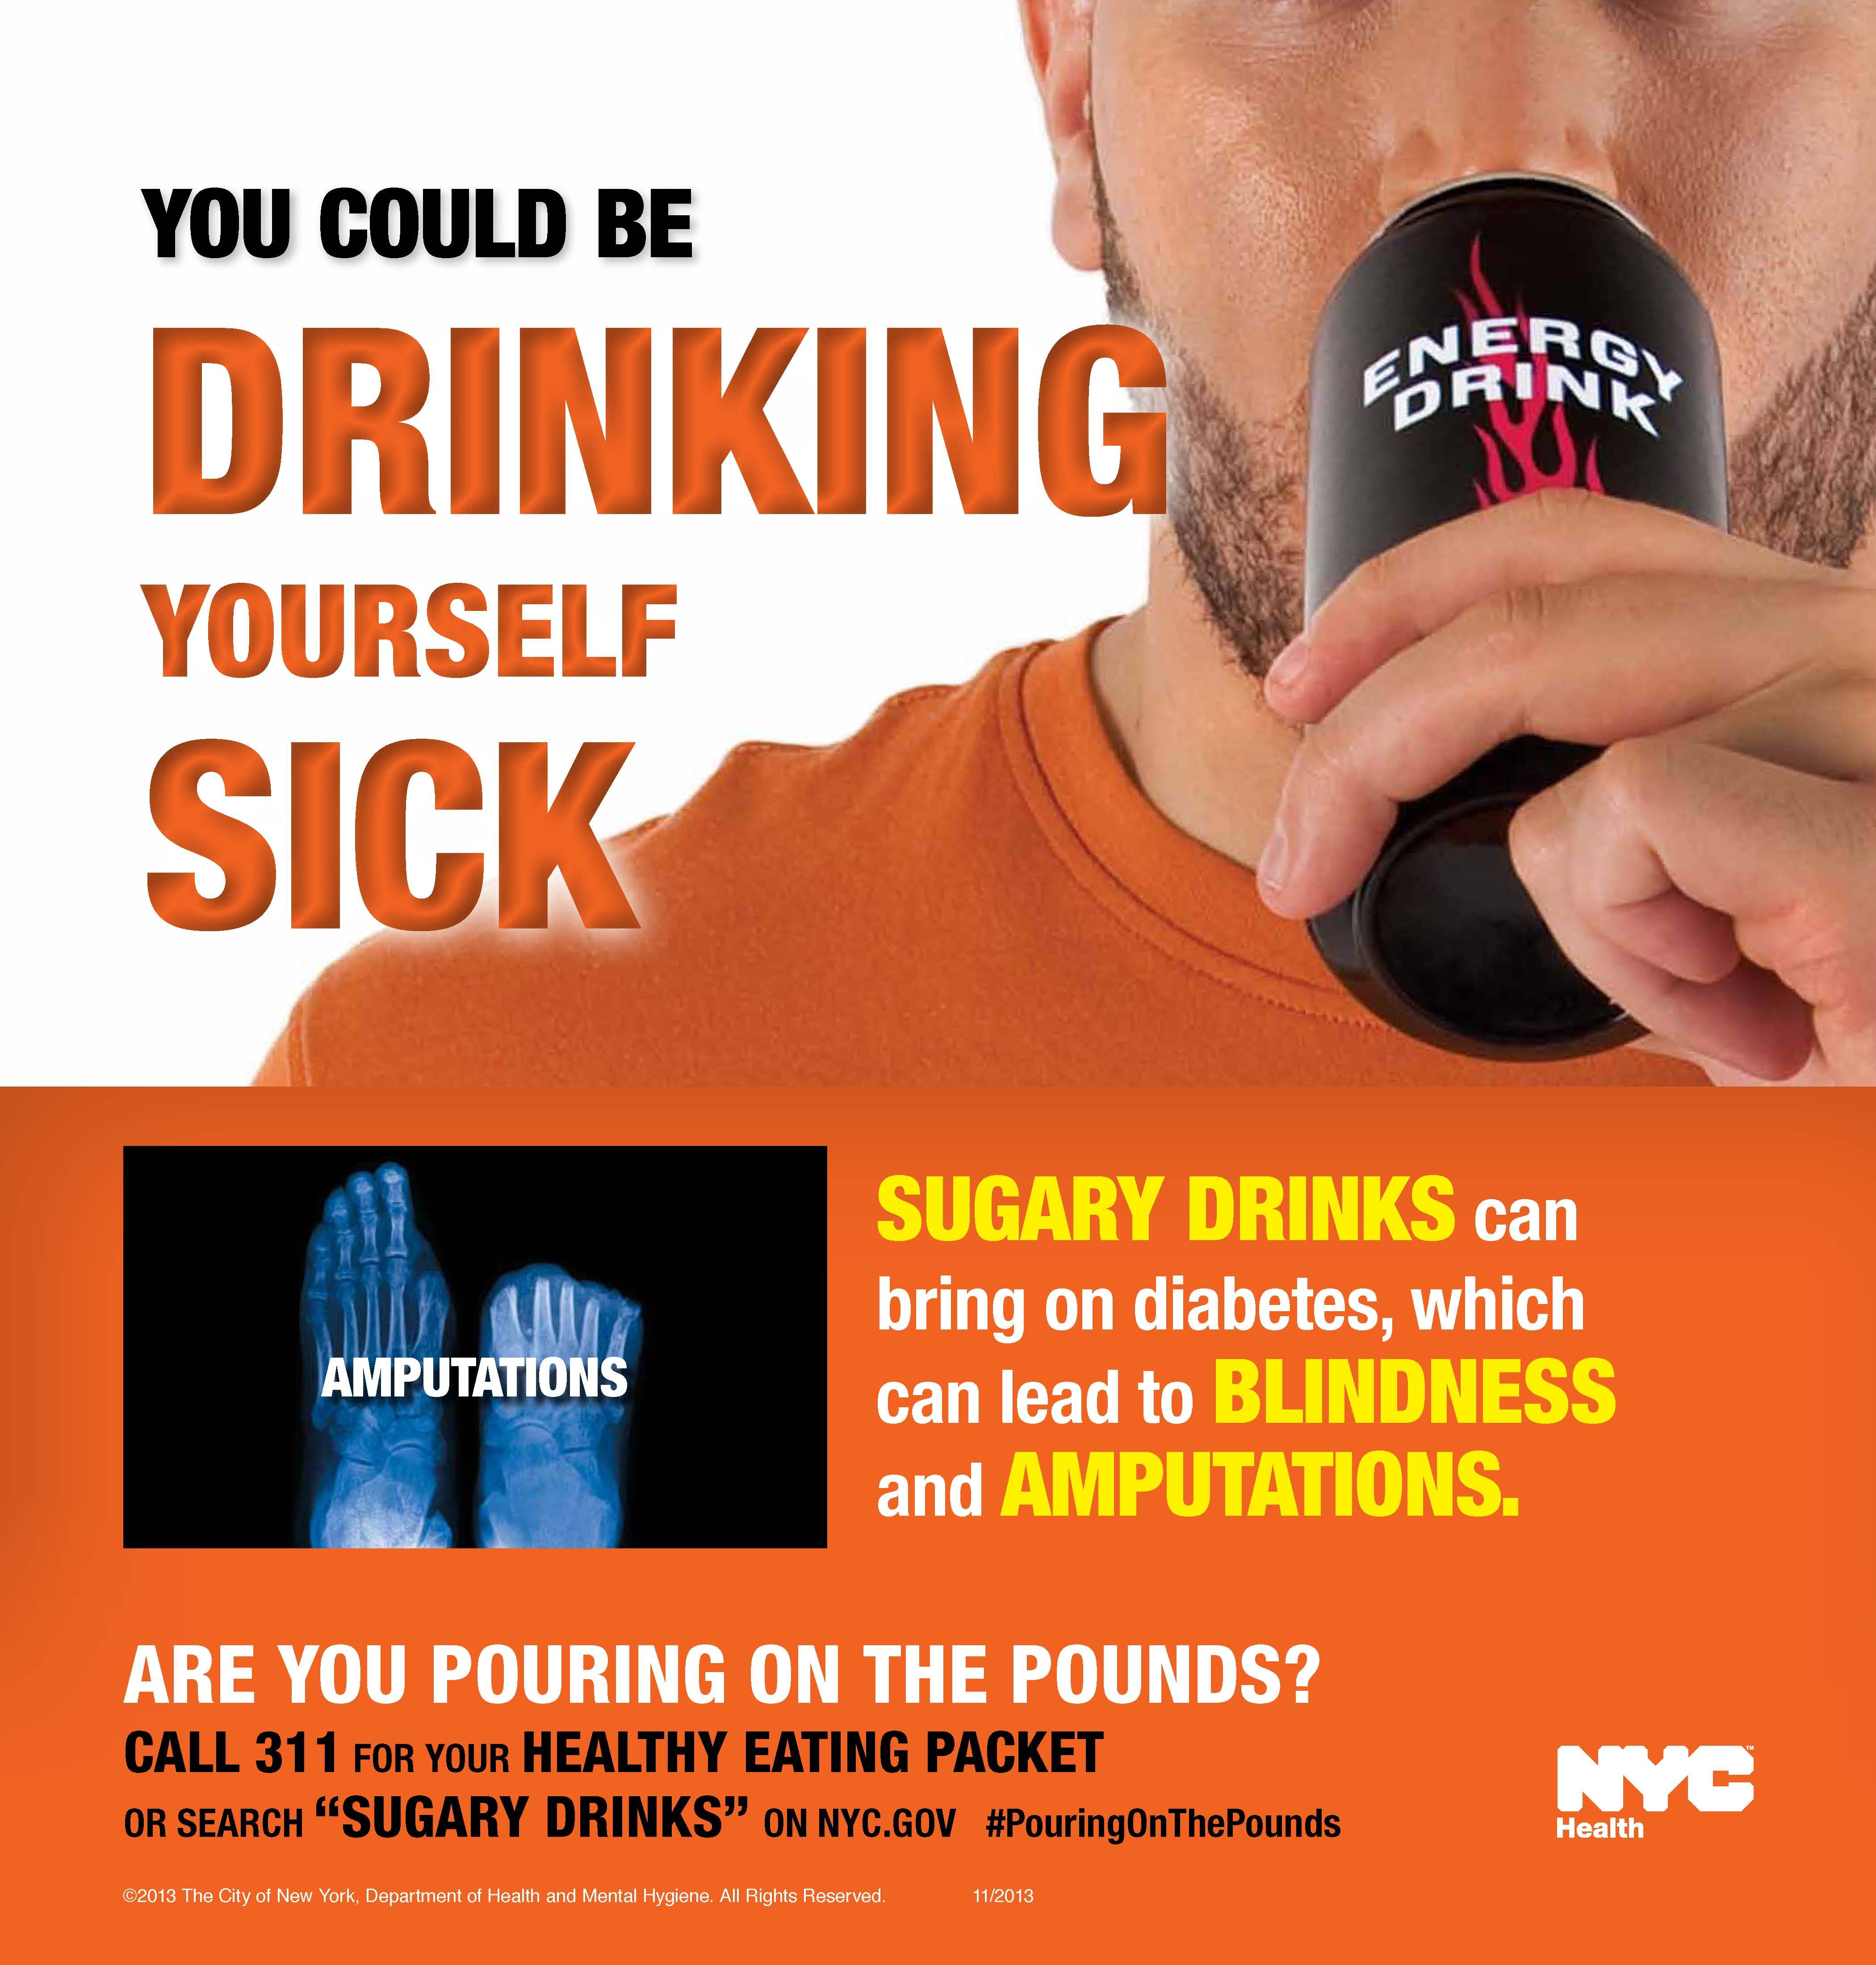 Pin by NYC Health on NYC Health Campaigns Health